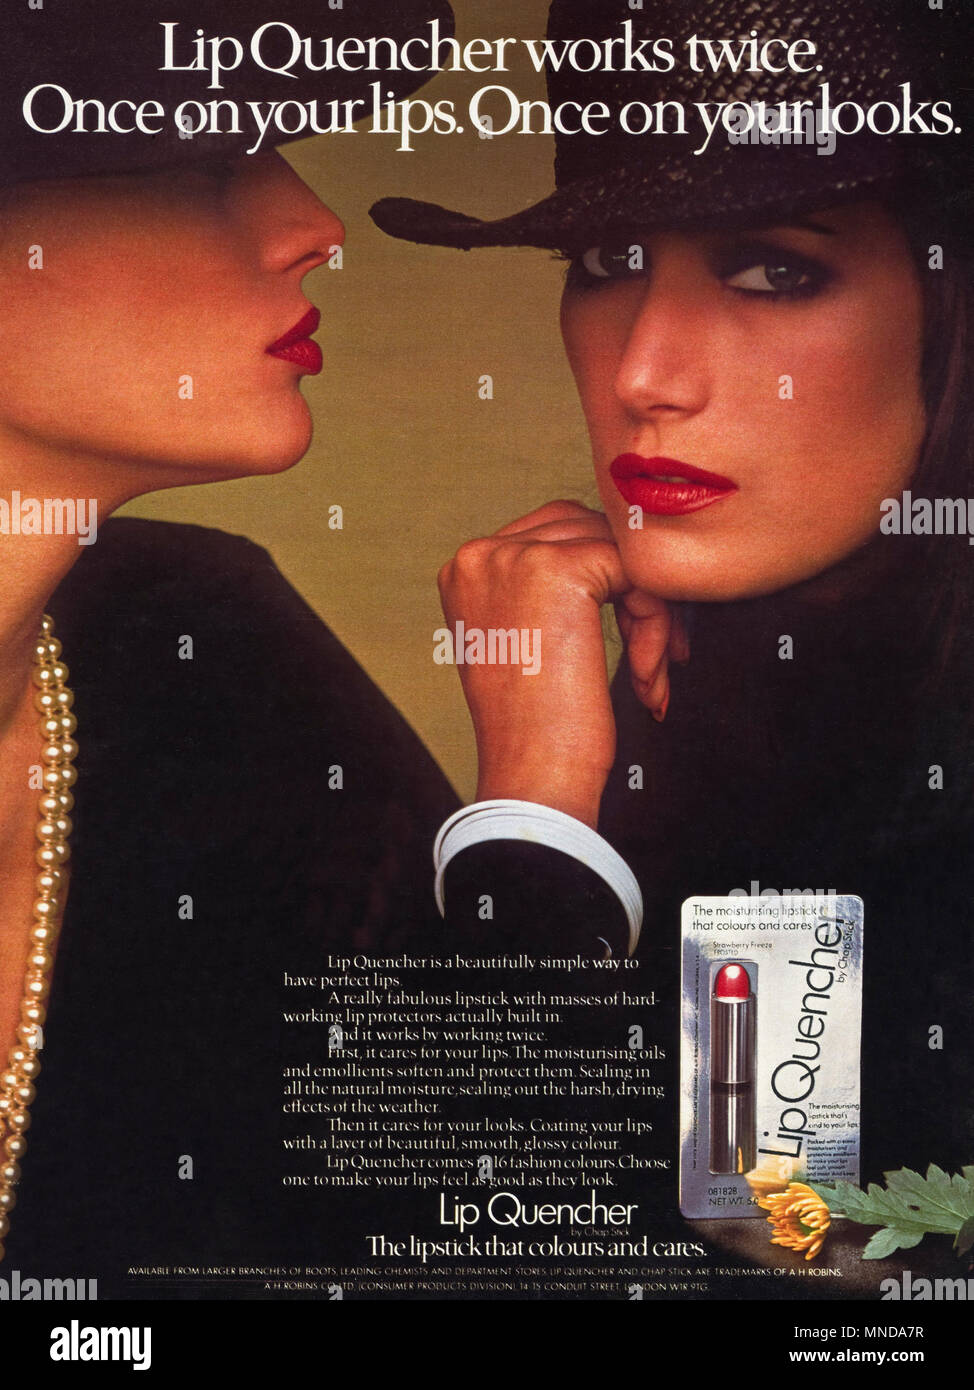 1980s original old vintage advertisement advertising Lip Quencher lipstick advert in English magazine circa 1980 - Stock Image